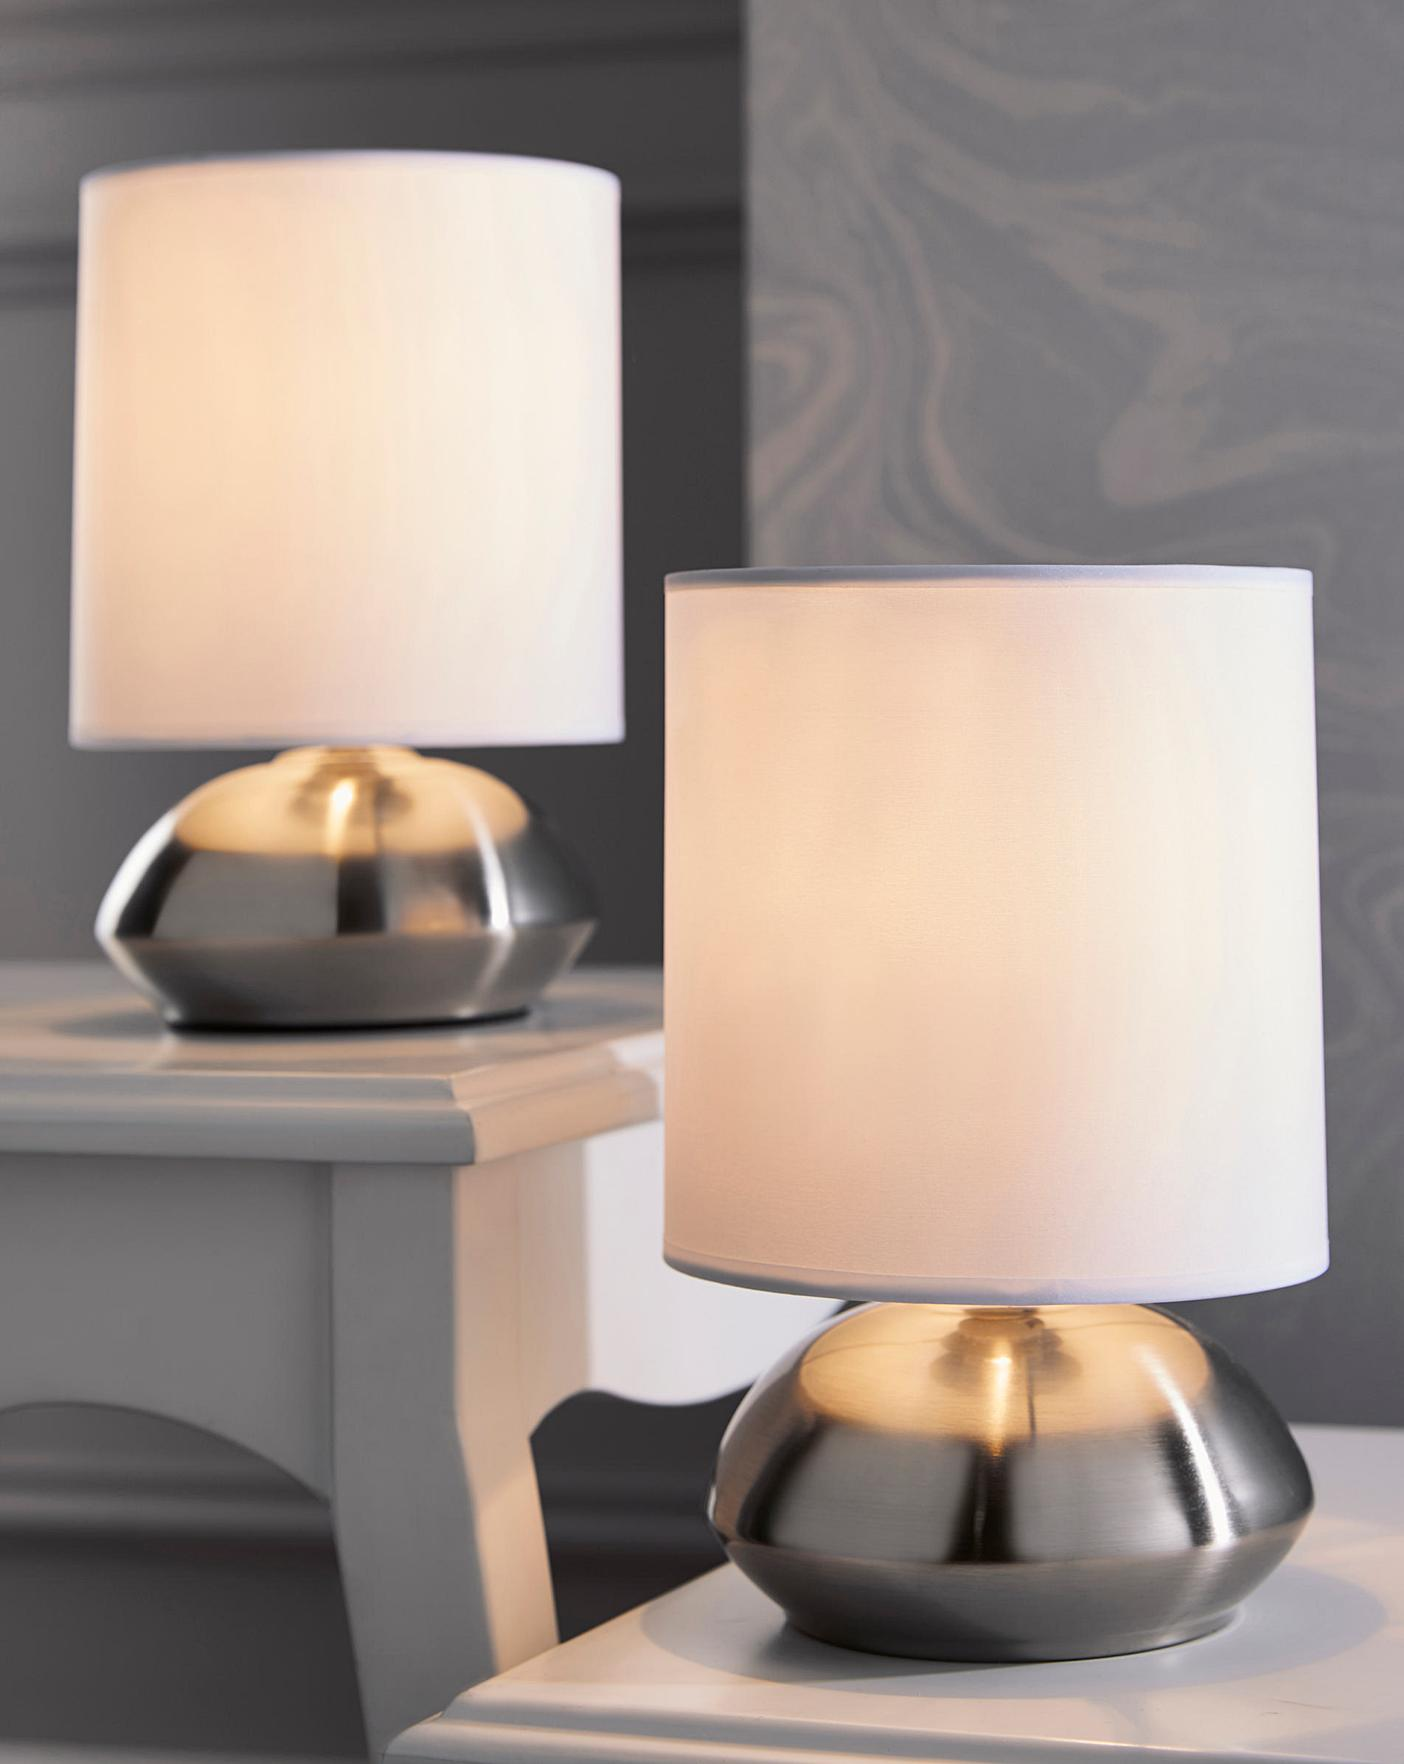 Twin Pebble Touch Table Lamps